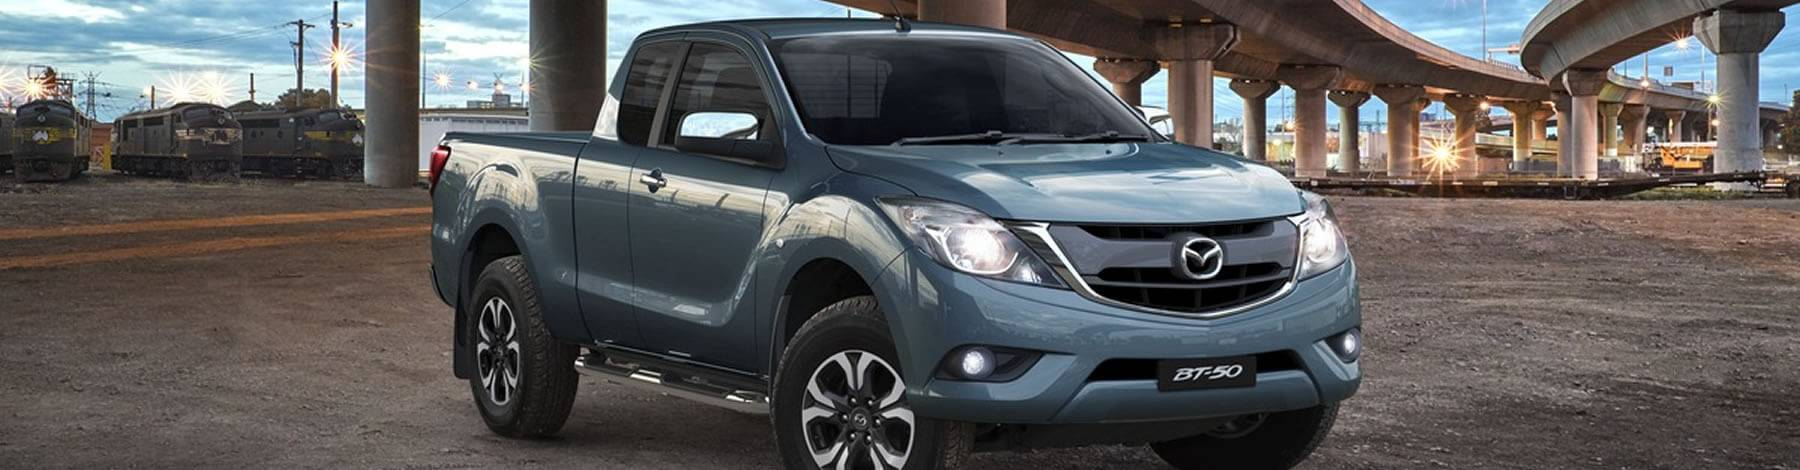 Mazda BT50 Freestyle Cab XTR